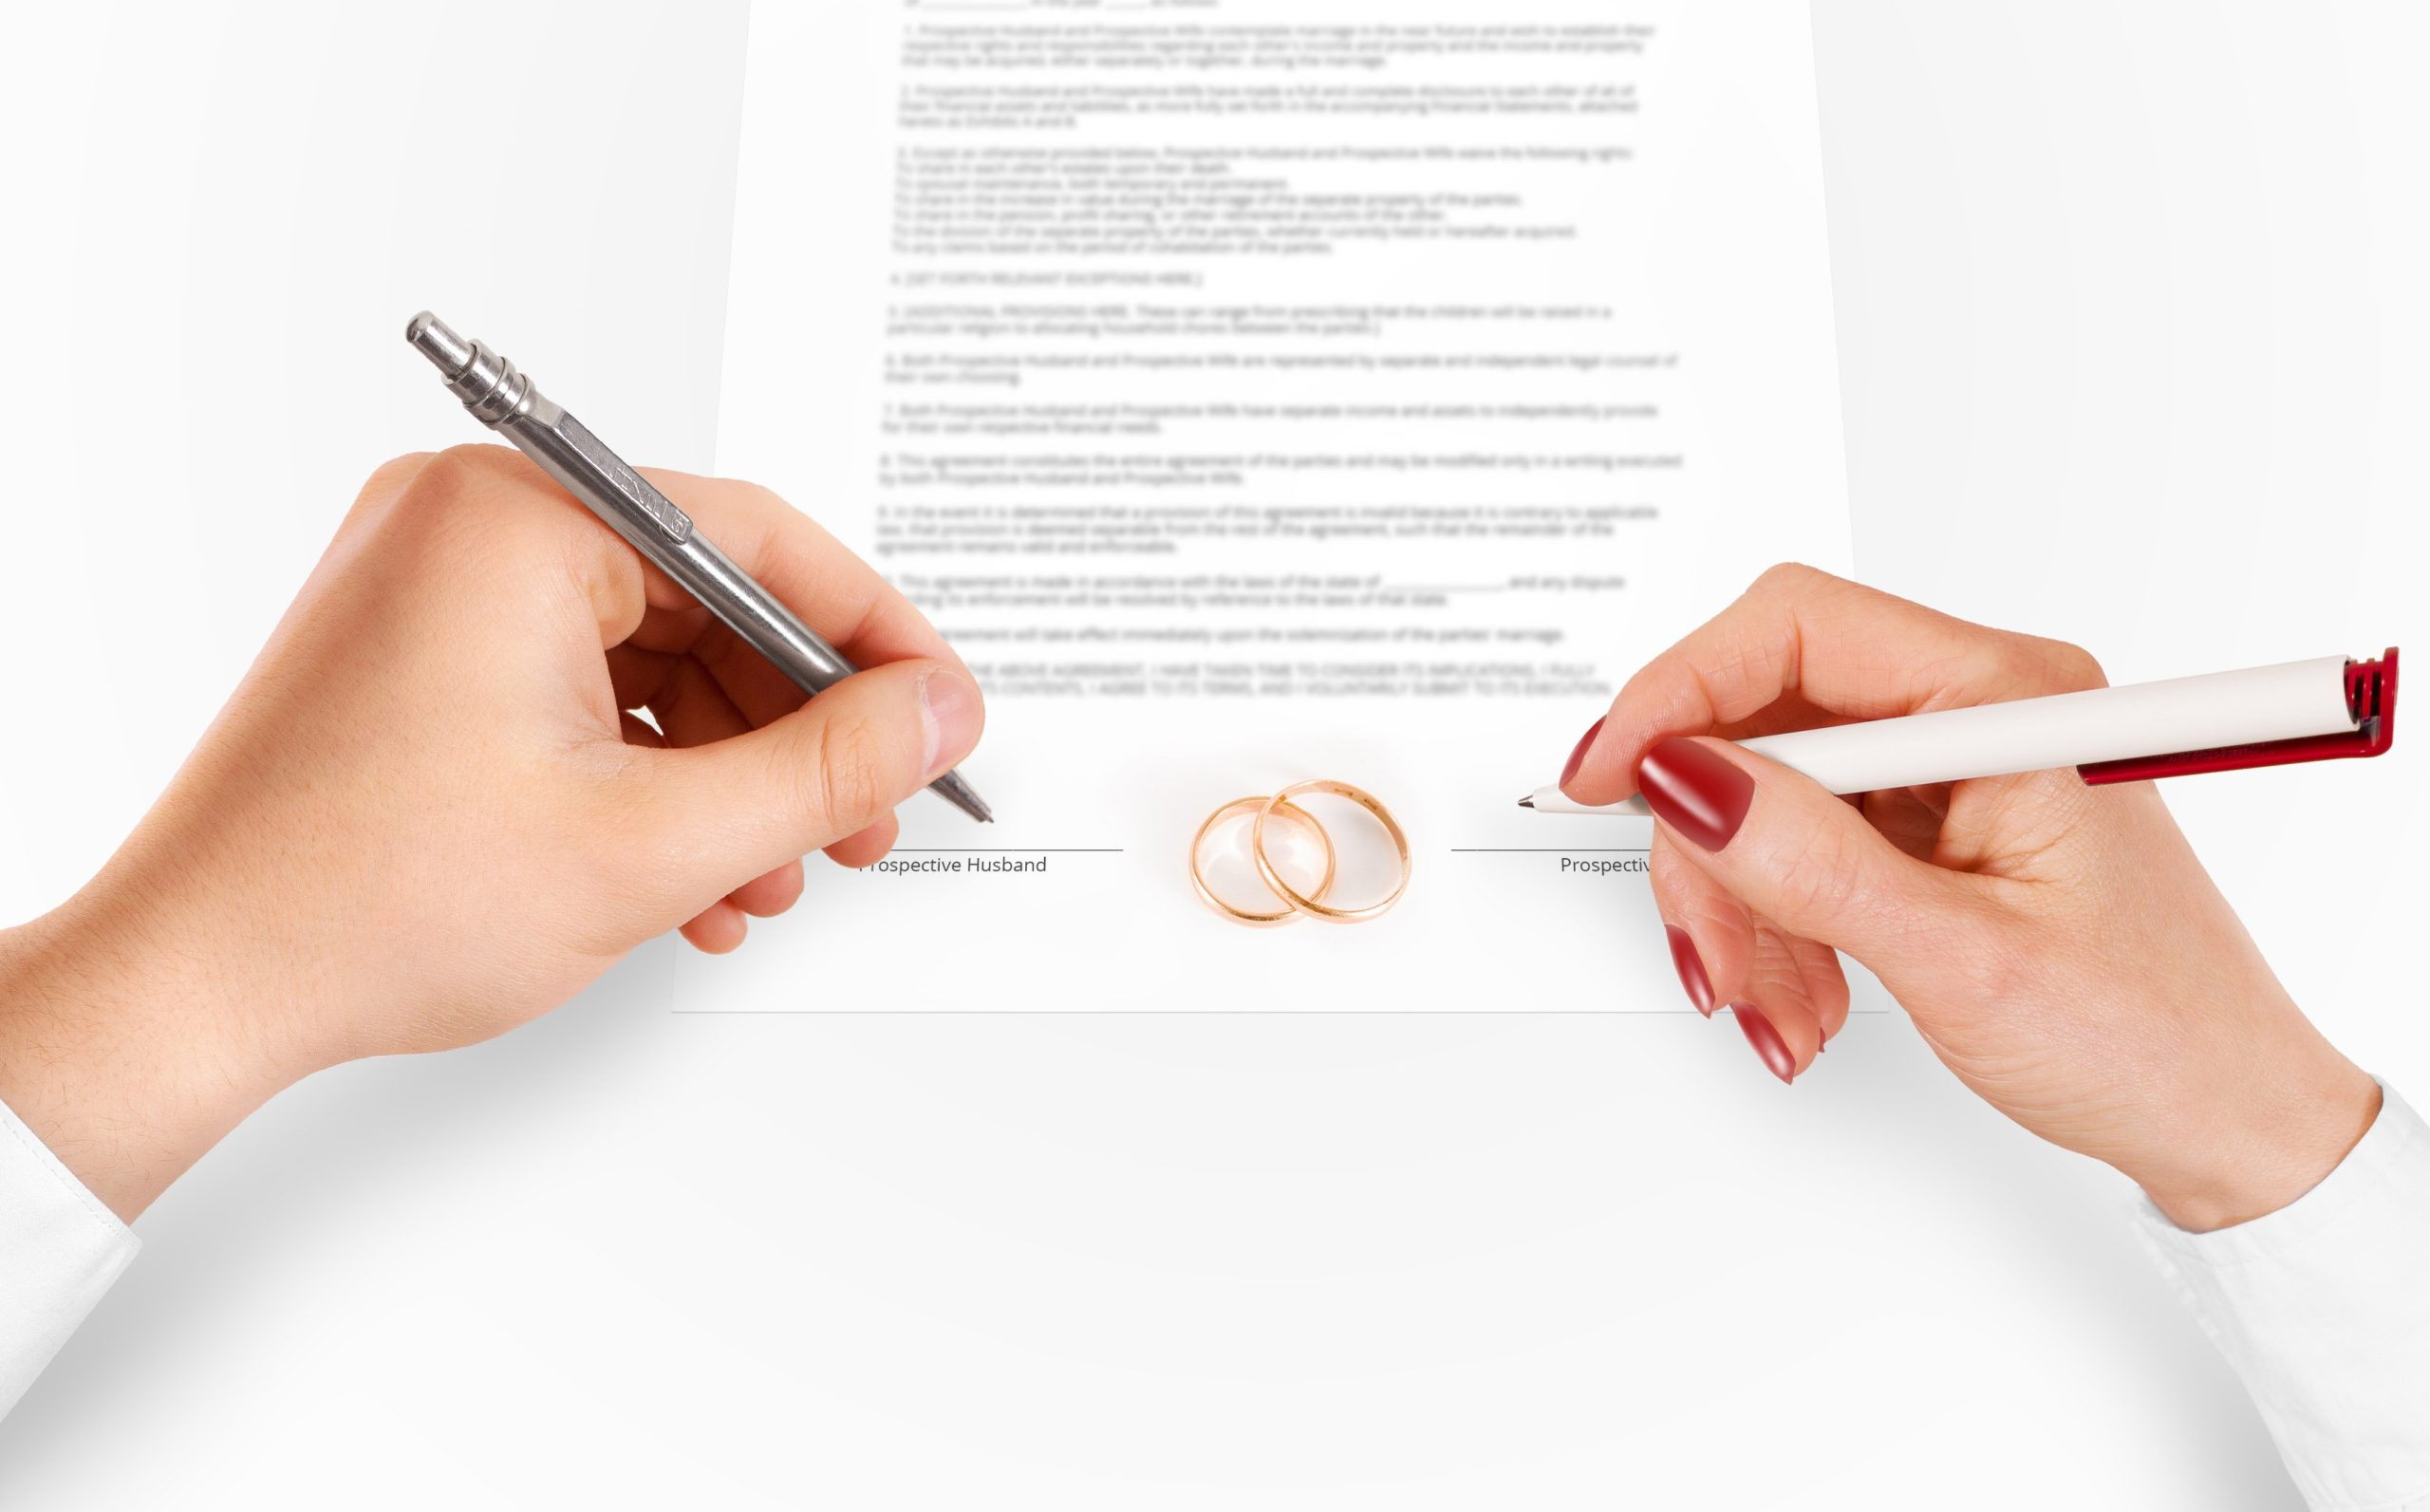 Are pre-nuptial agreements legally binding?